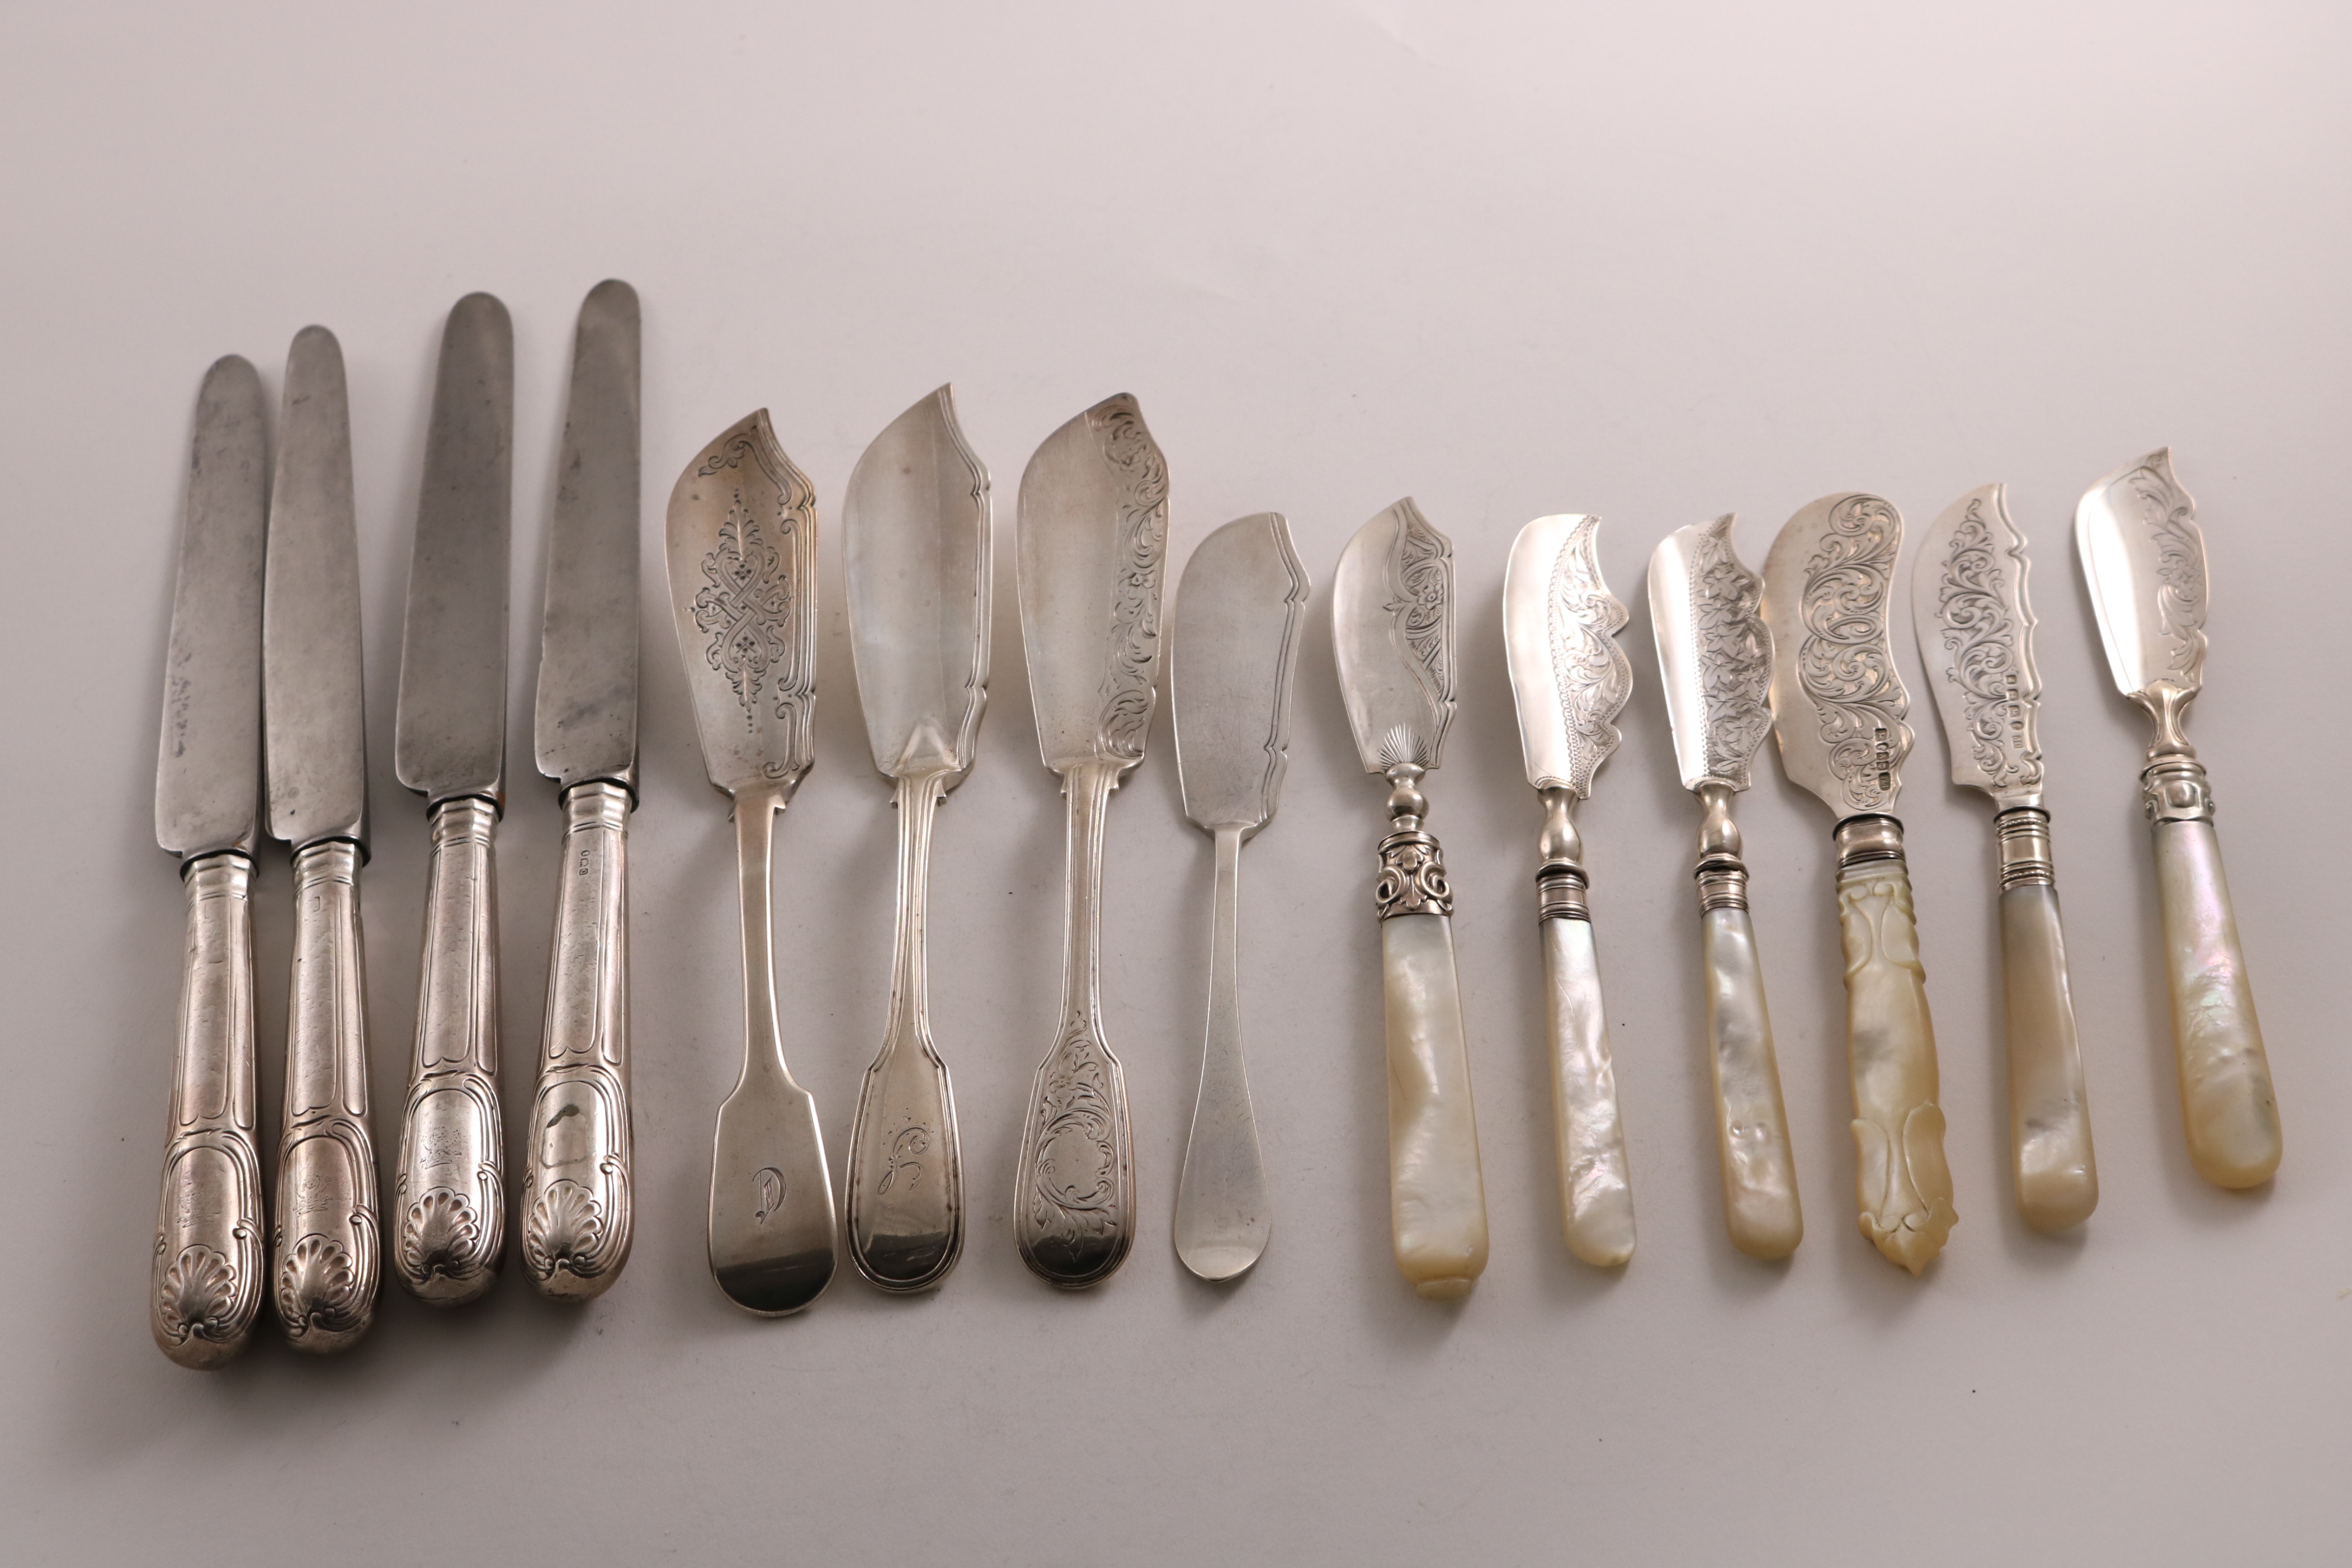 Lot 57 - A SMALL COLLECTION OF SILVER BUTTER KNIVES mixed dates & makers, Victorian-Edwardian (including